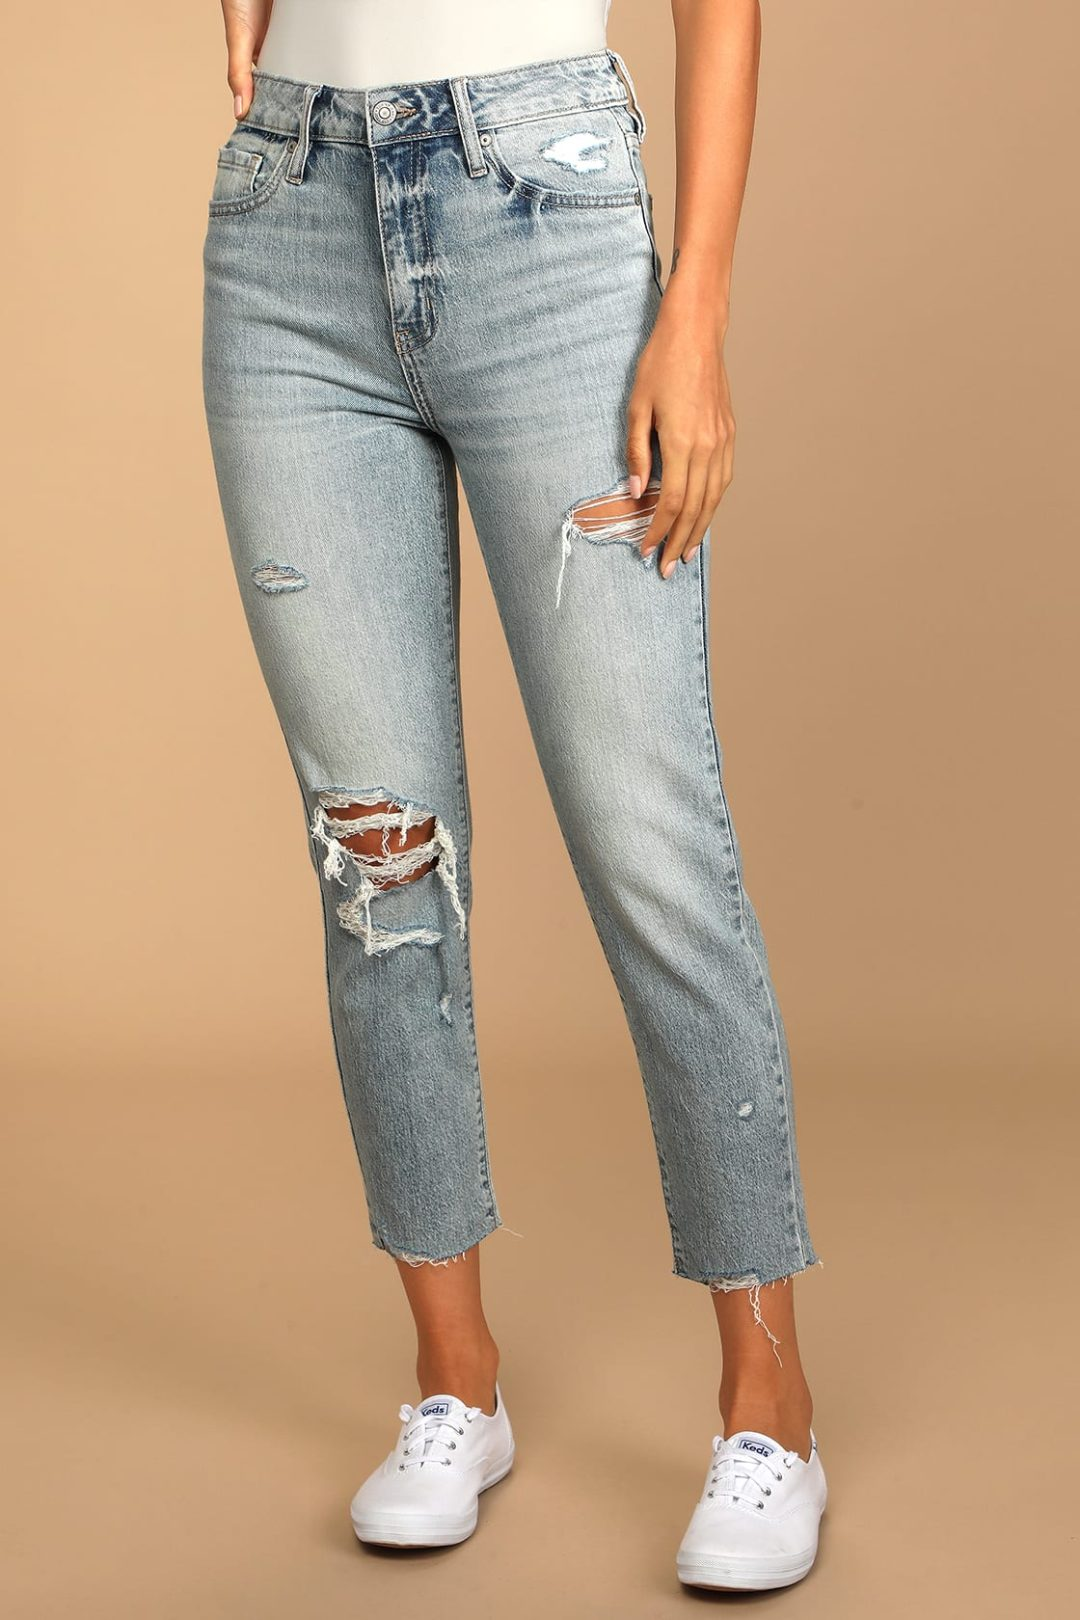 What To Wear With Sperrys: Distressed mom jeans